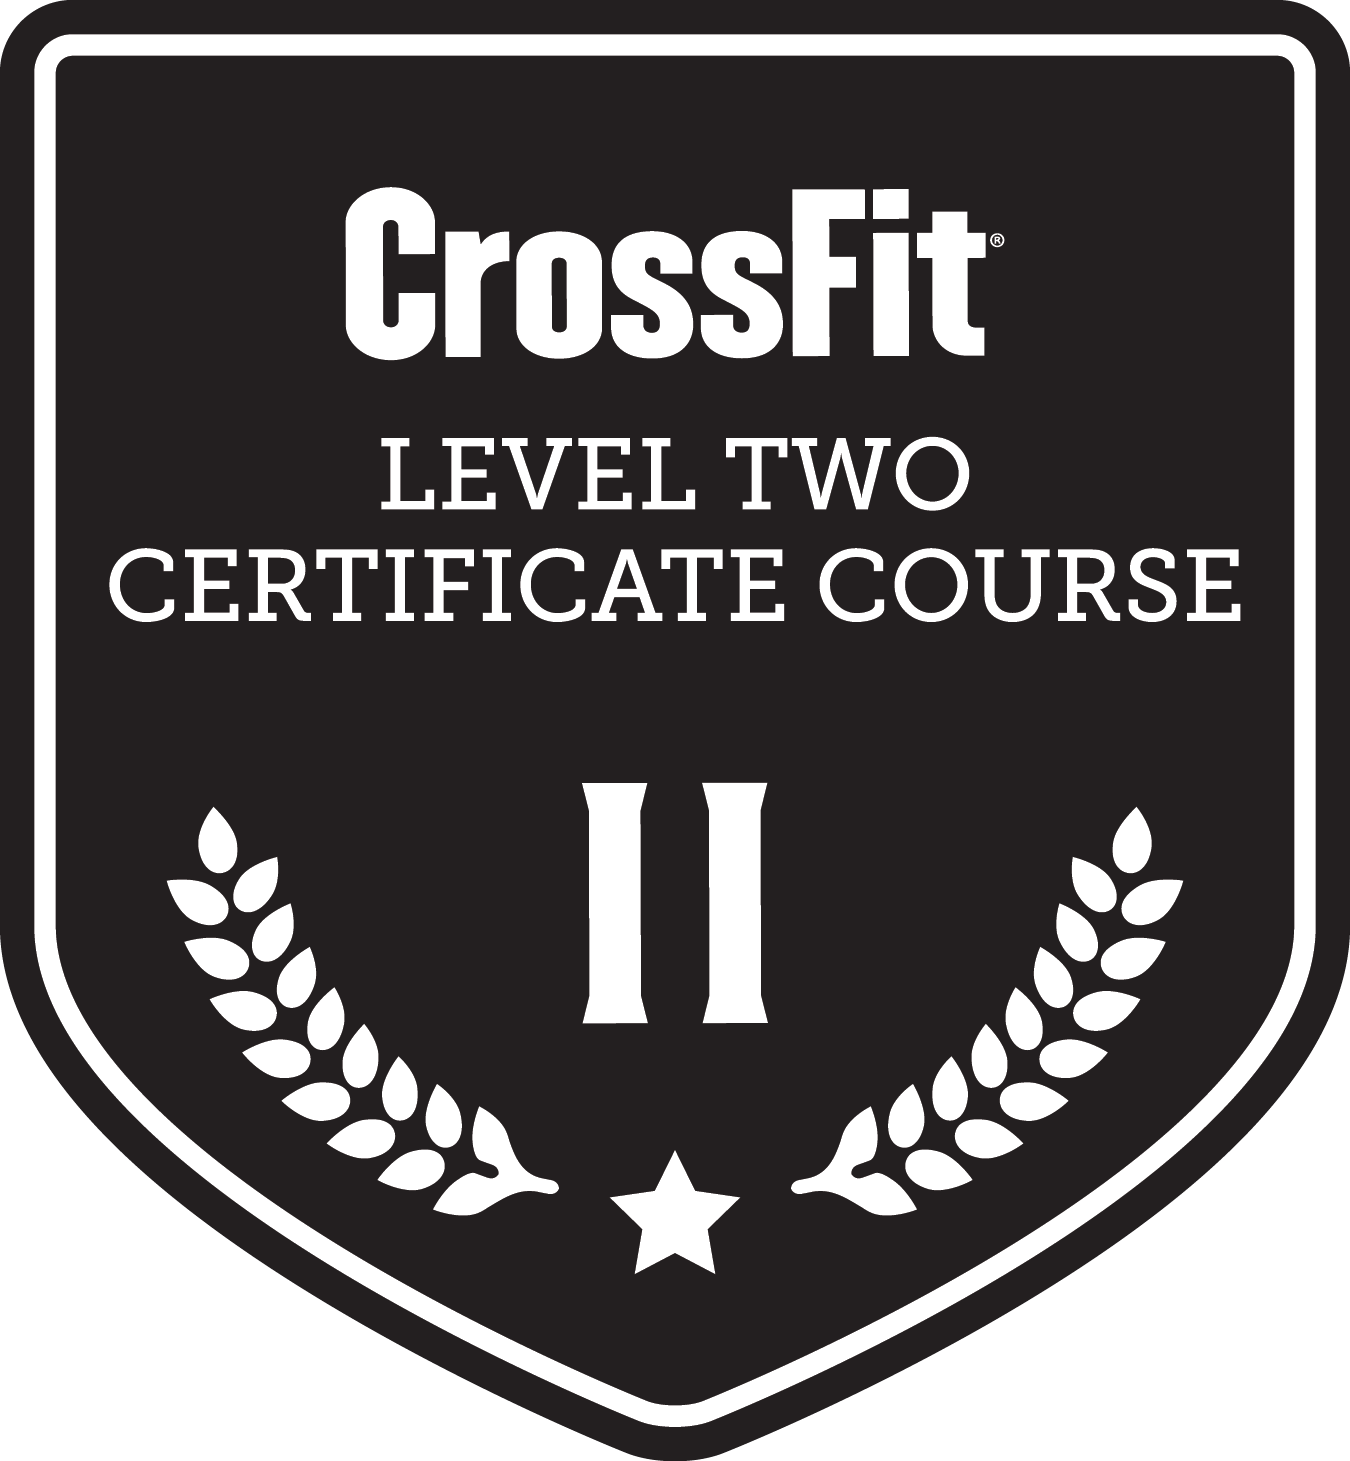 CrossFit Certification Level Two